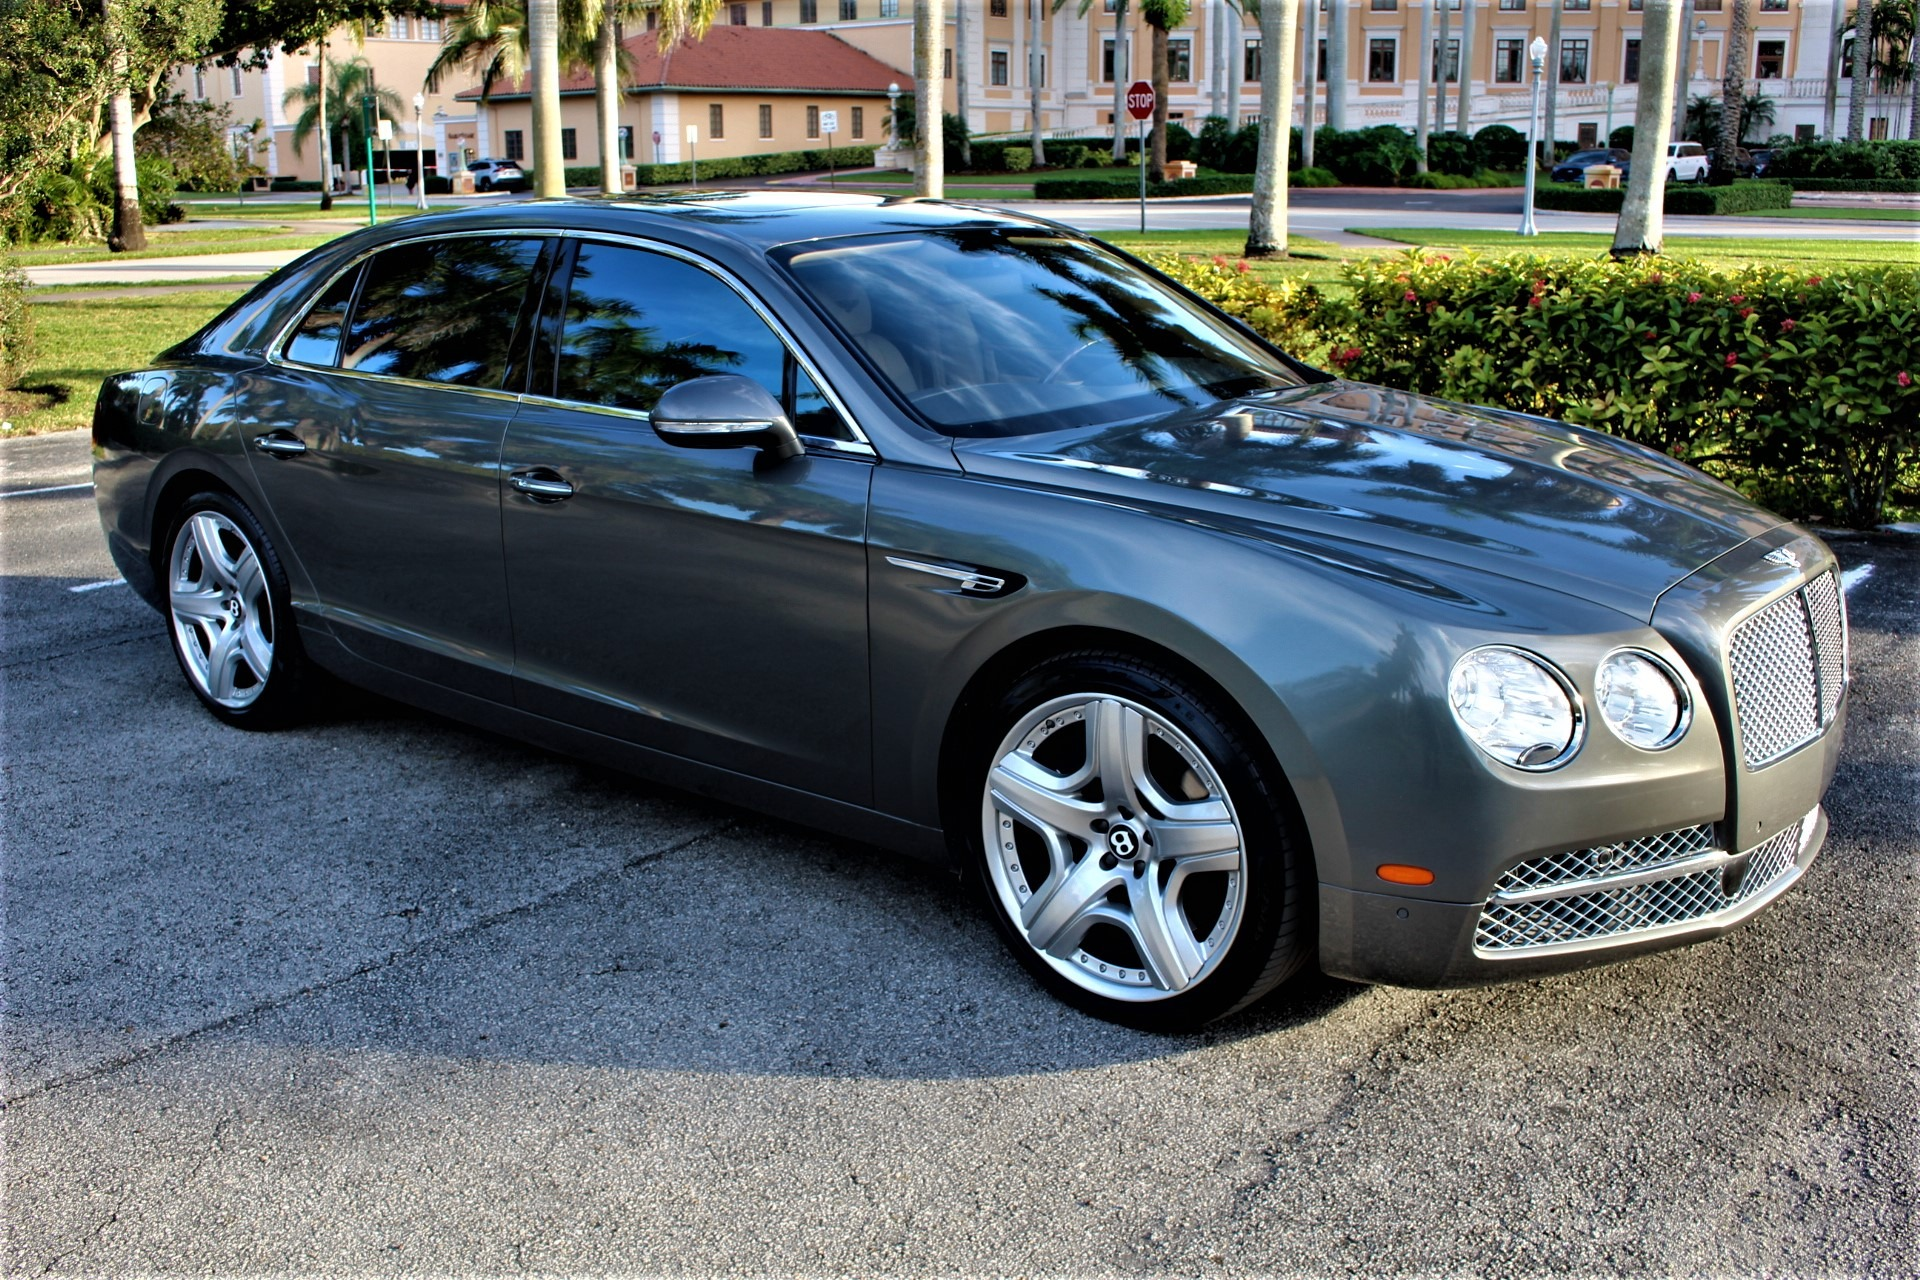 Used 2014 Bentley Flying Spur for sale Sold at The Gables Sports Cars in Miami FL 33146 4